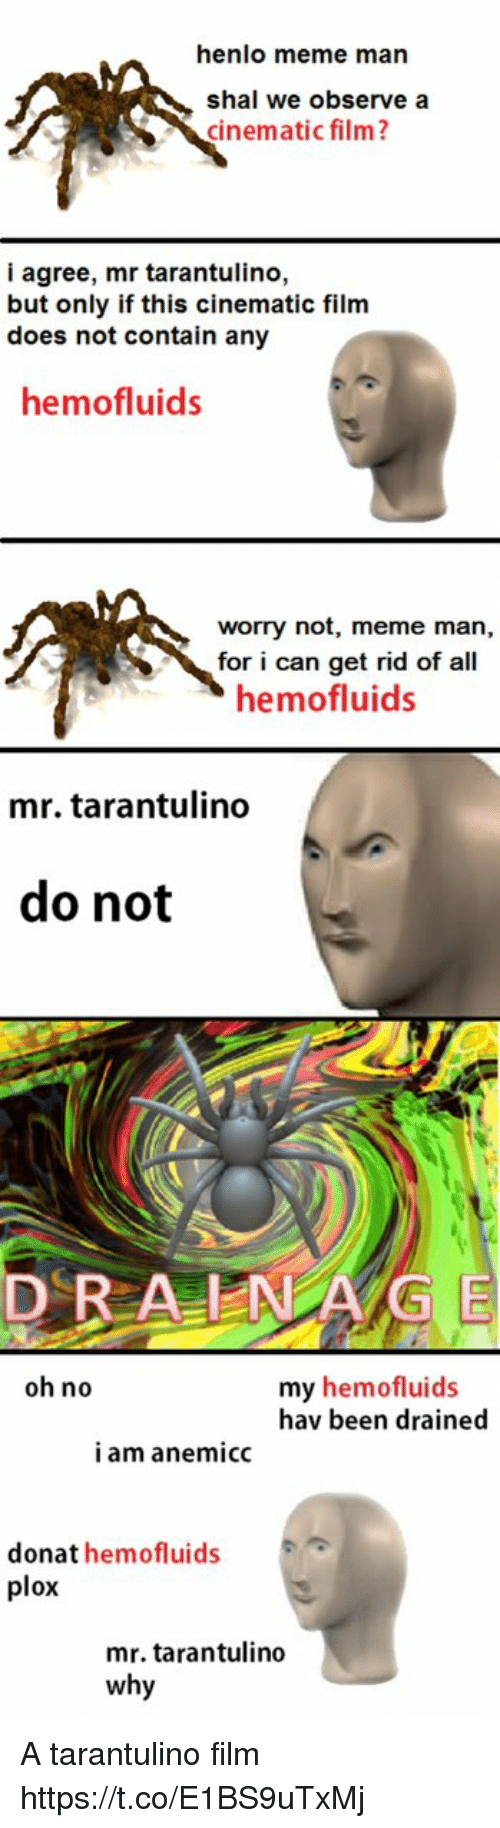 Henlo: henlo meme man  shal we observe a  cinematic film?  i agree, mr tarantulino,  but only if this cinematic film  does not contain any  hemofluids  worry not, meme man,  for i can get rid of all  hemofluids  mr. tarantulino  do not  DRA NG E  oh no  my hemofluids  hav been drained  i am anemicc  donat hemofluids  plox  mr. tarantulino  why A tarantulino film https://t.co/E1BS9uTxMj